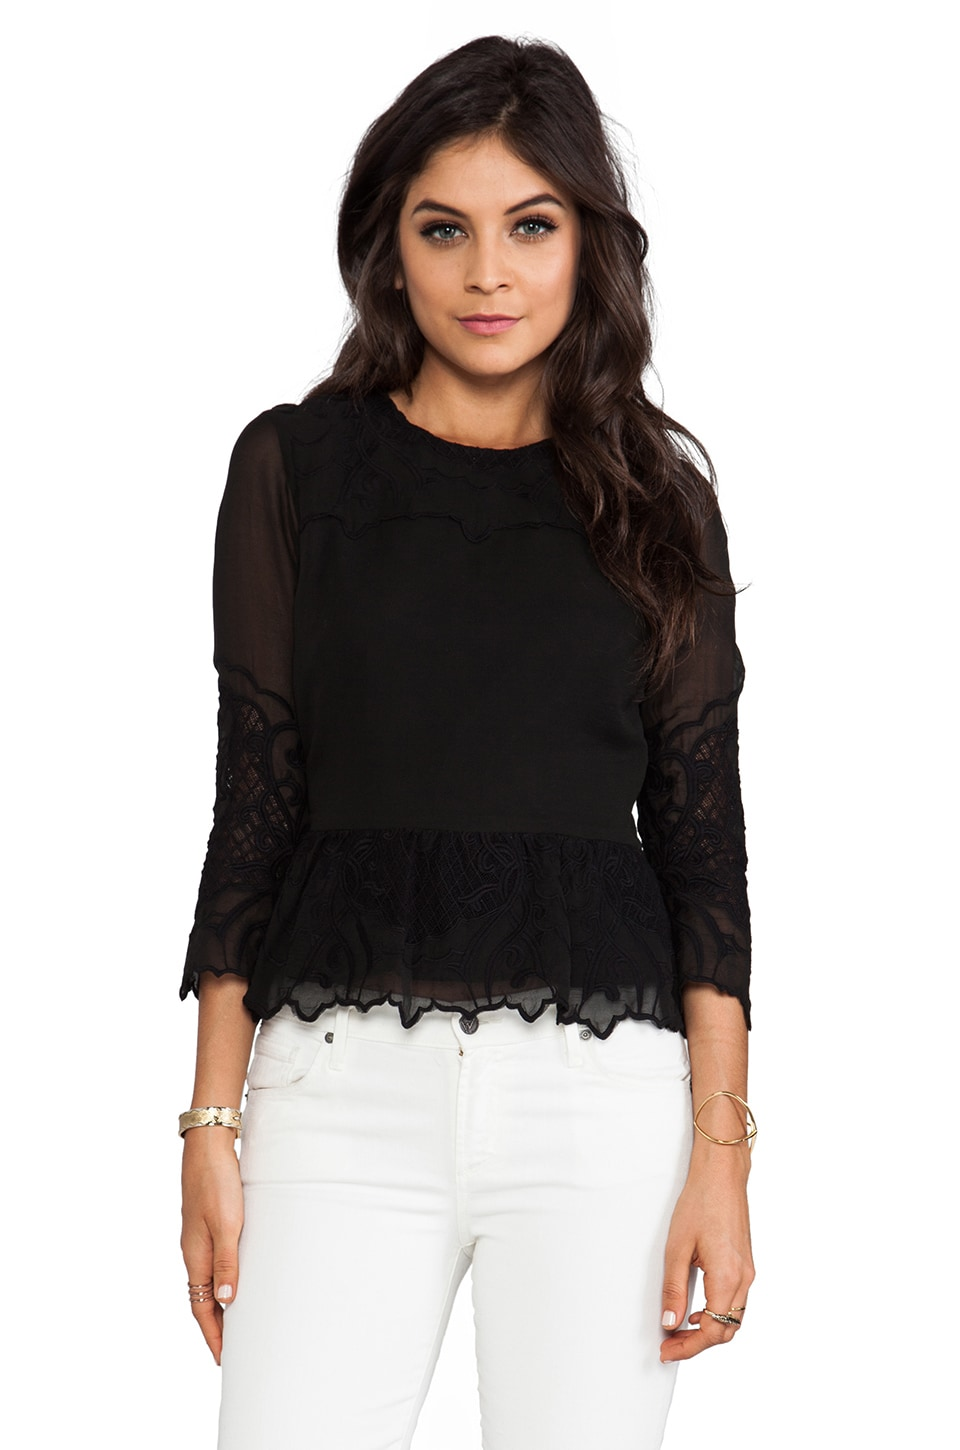 Dolce Vita Amada New Baroque Top in Black